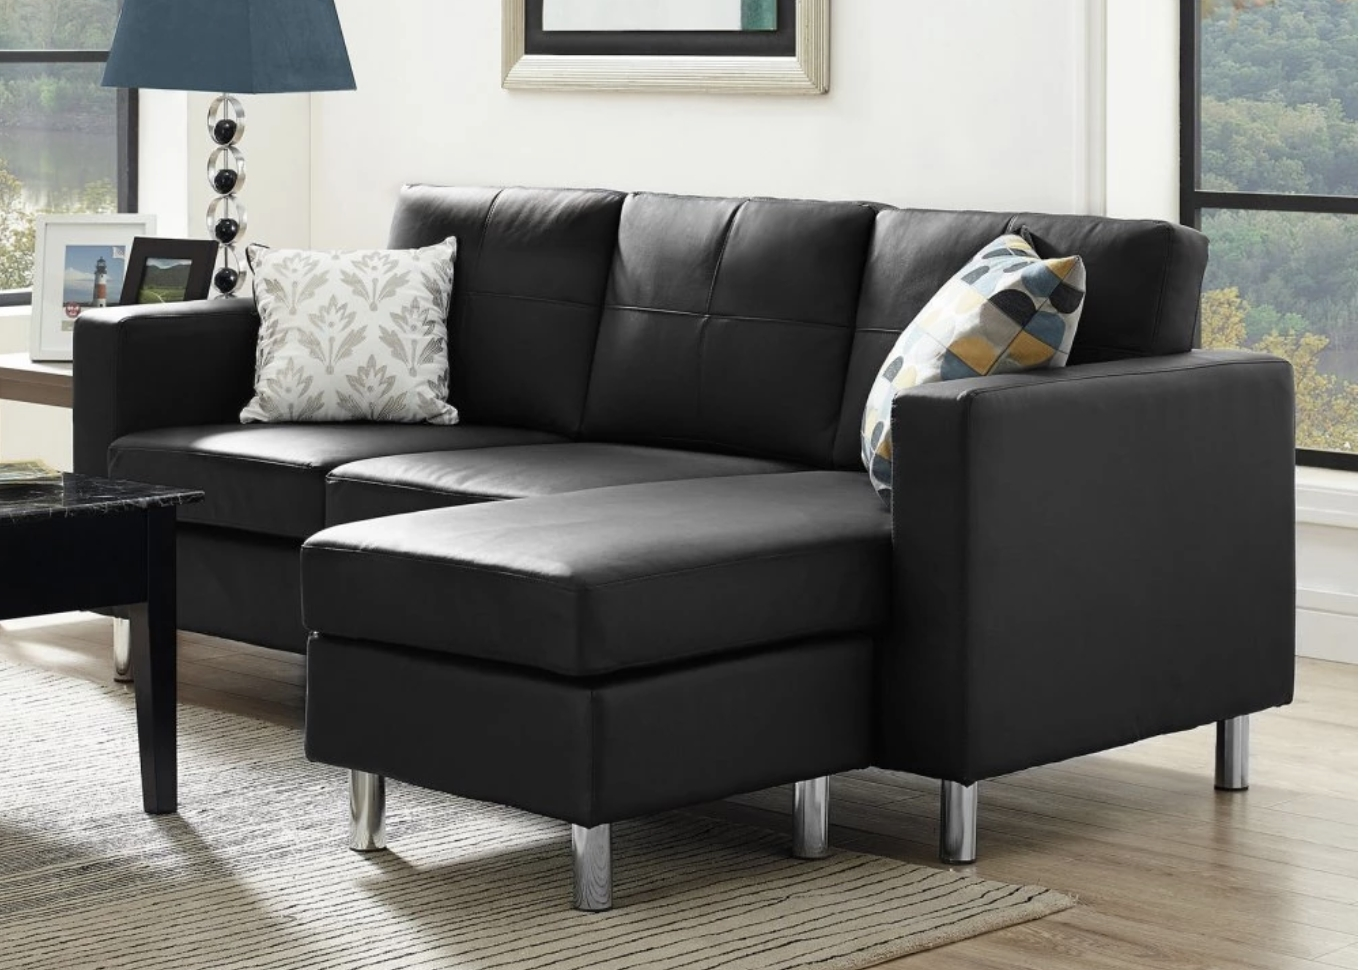 Well Known 75 Modern Sectional Sofas For Small Spaces (2018) With 100X80 Sectional Sofas (View 15 of 15)